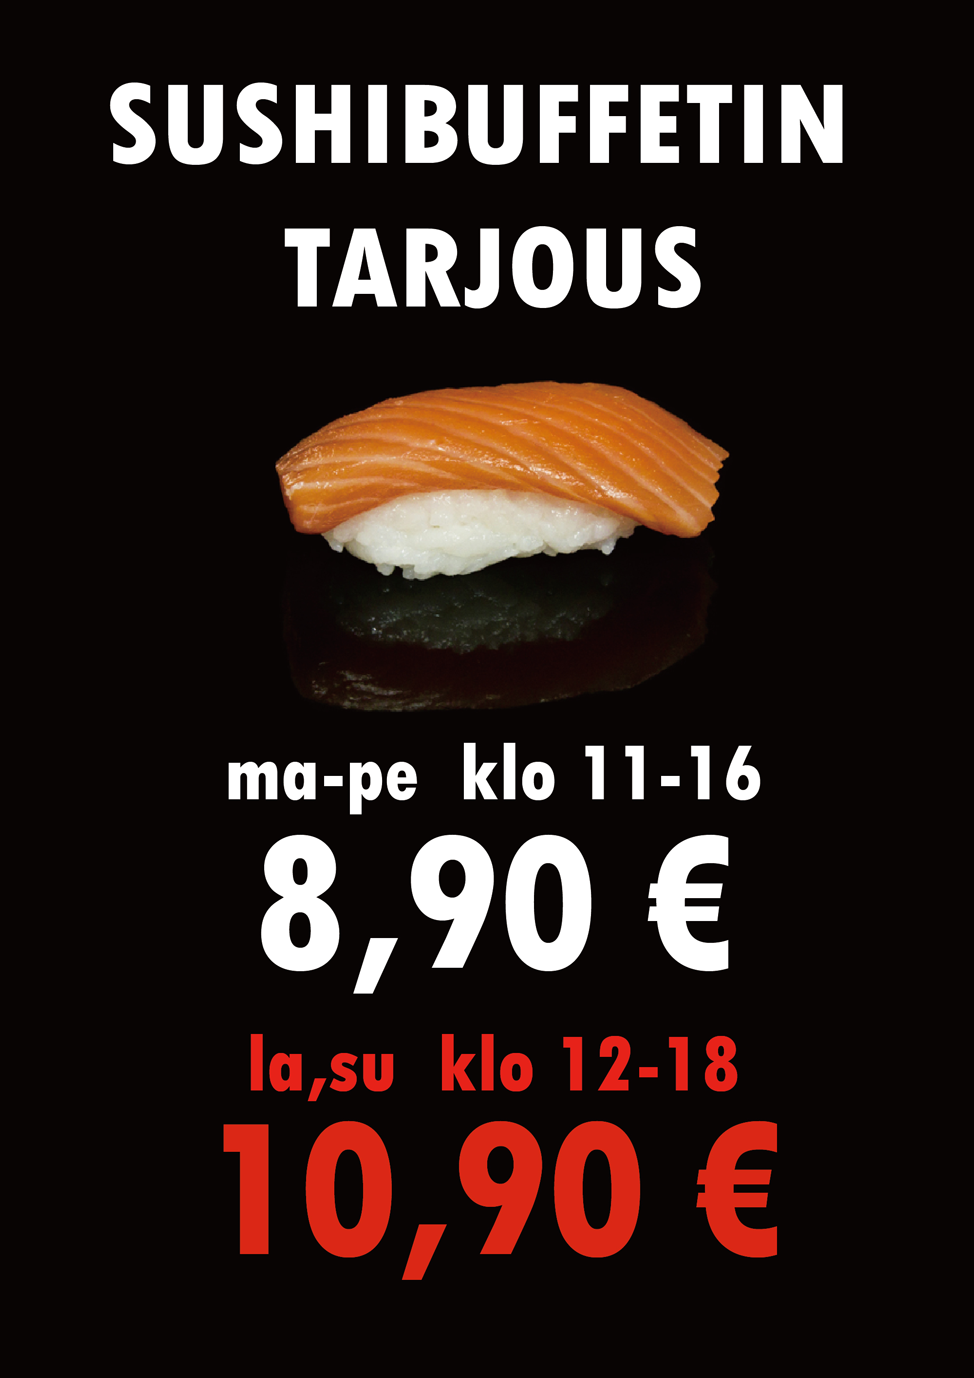 https://sites.google.com/a/lucky-house.net/www/home/sushi-tarjous.png